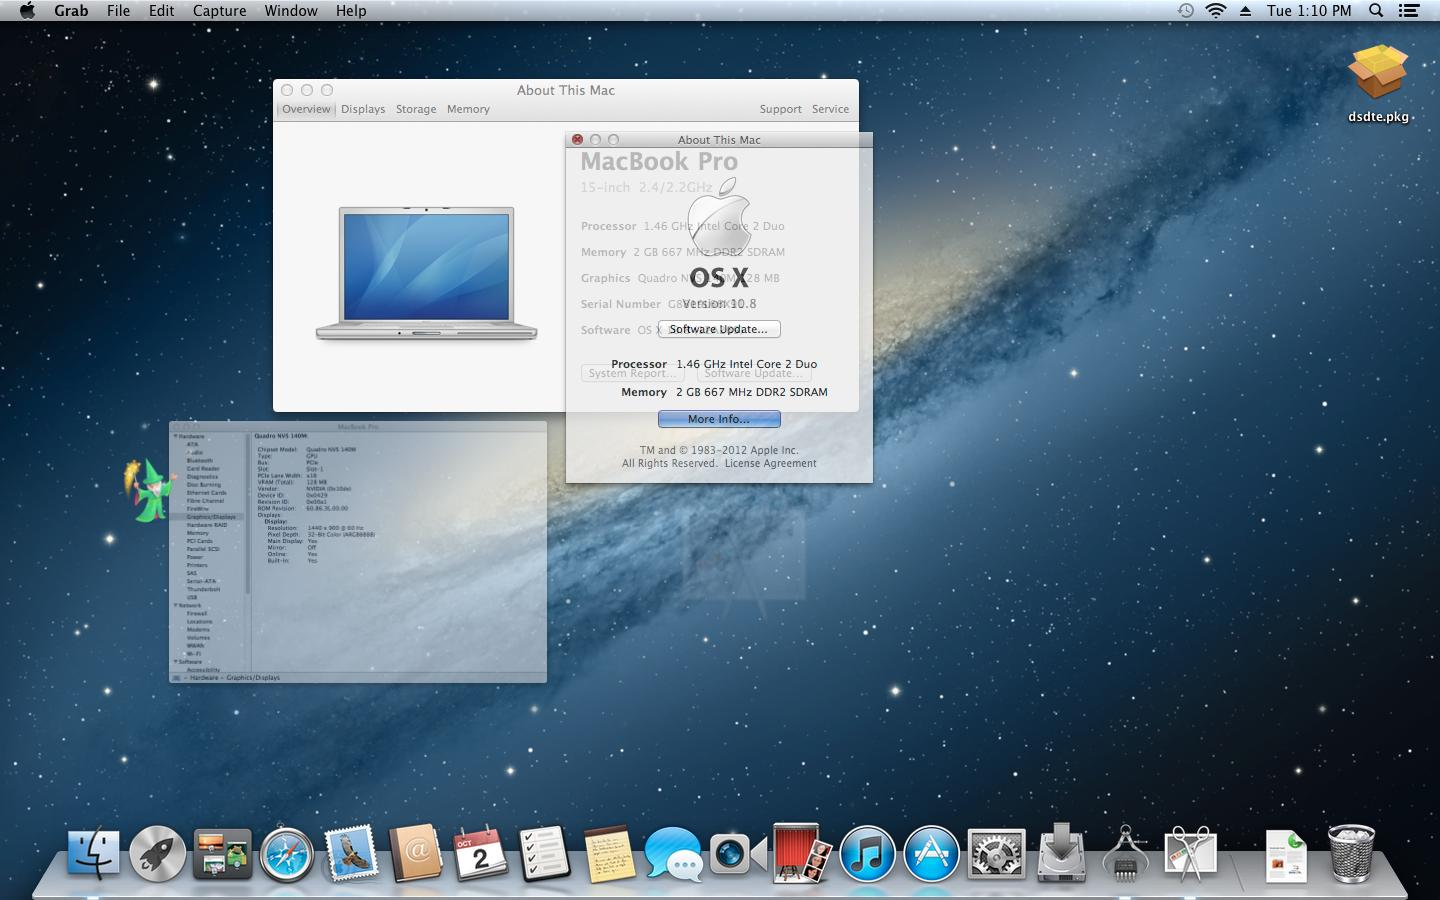 Download mac os x lion 107 for free iso image apps directories